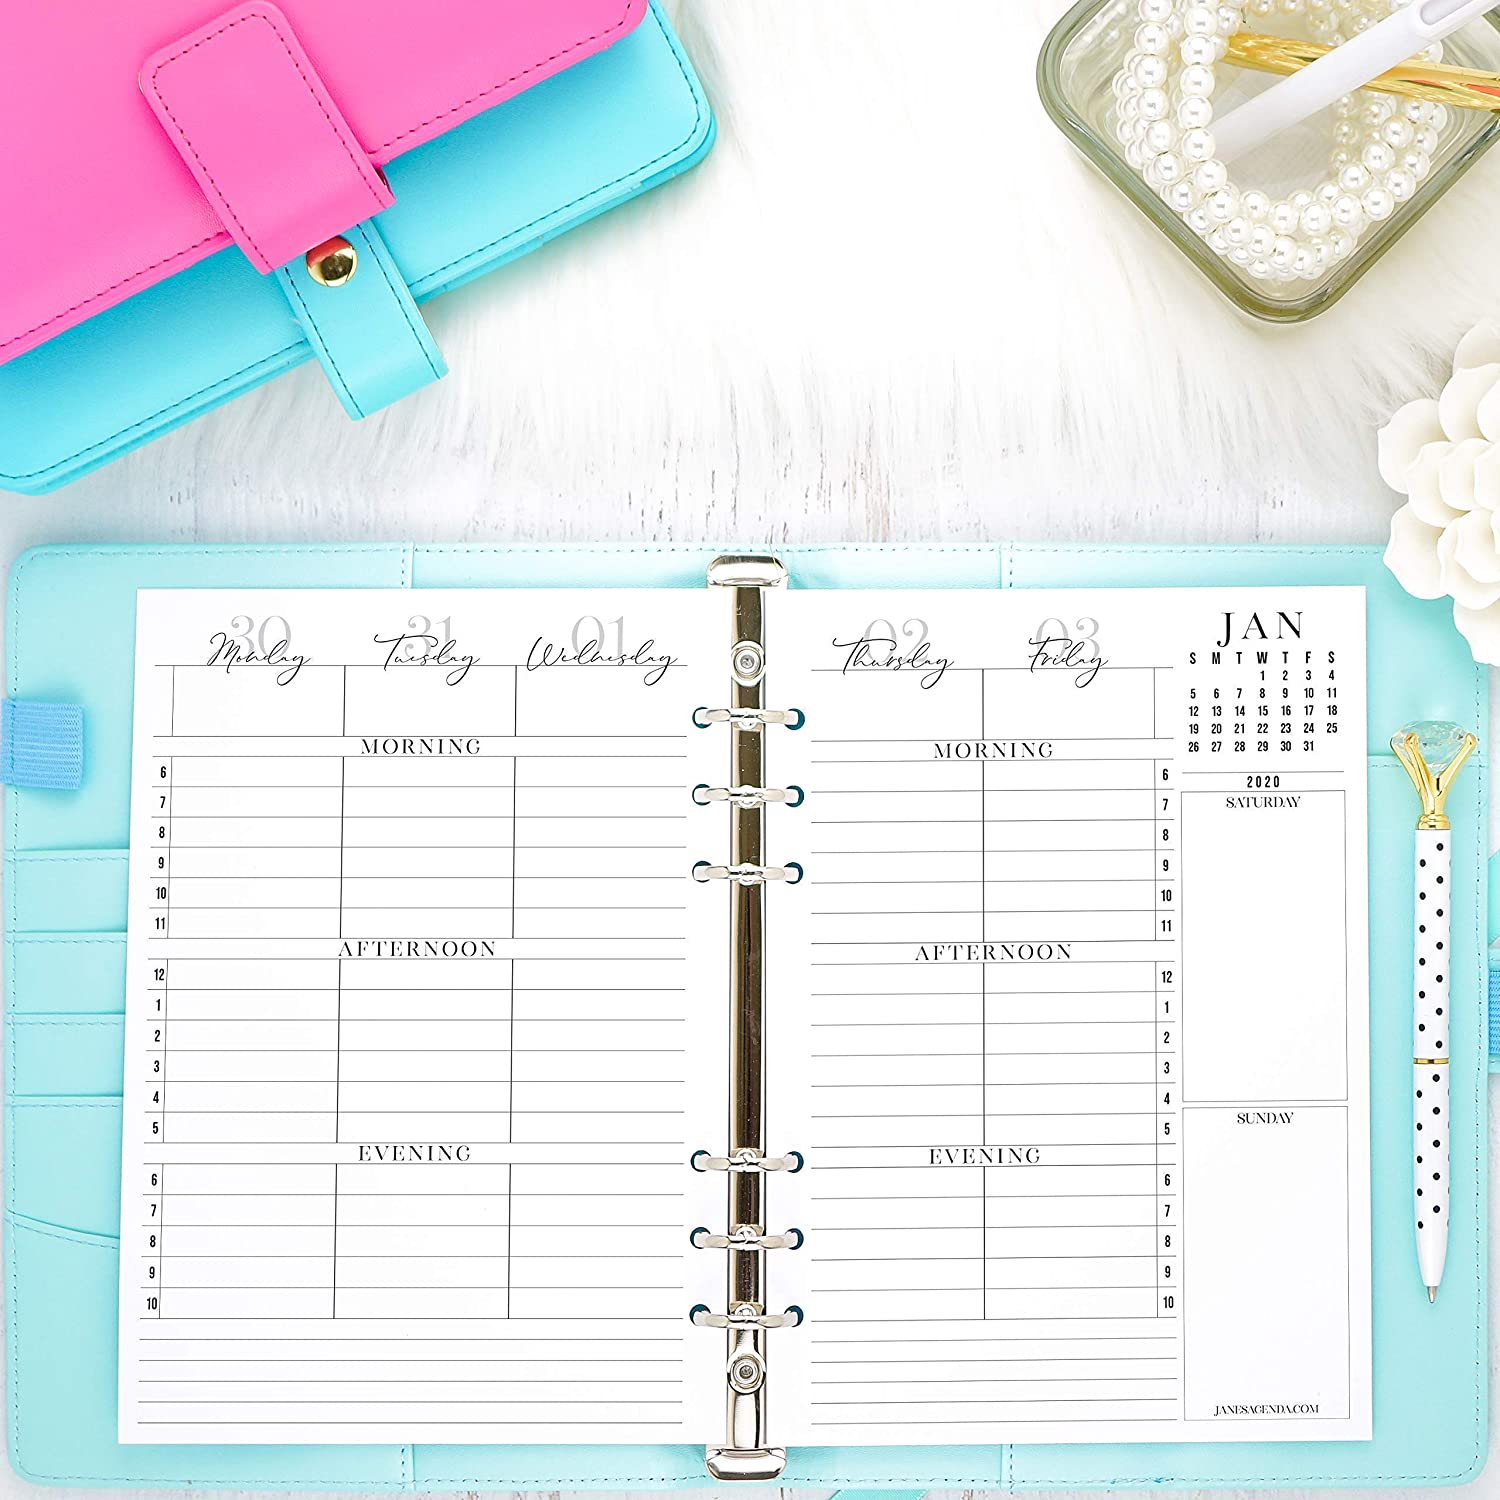 2020 and remainder 2019 Dated Weekly Hourly Planner Inserts | Refill A5 Six Ring Planner Systems | 5.83x8.27 inch pages